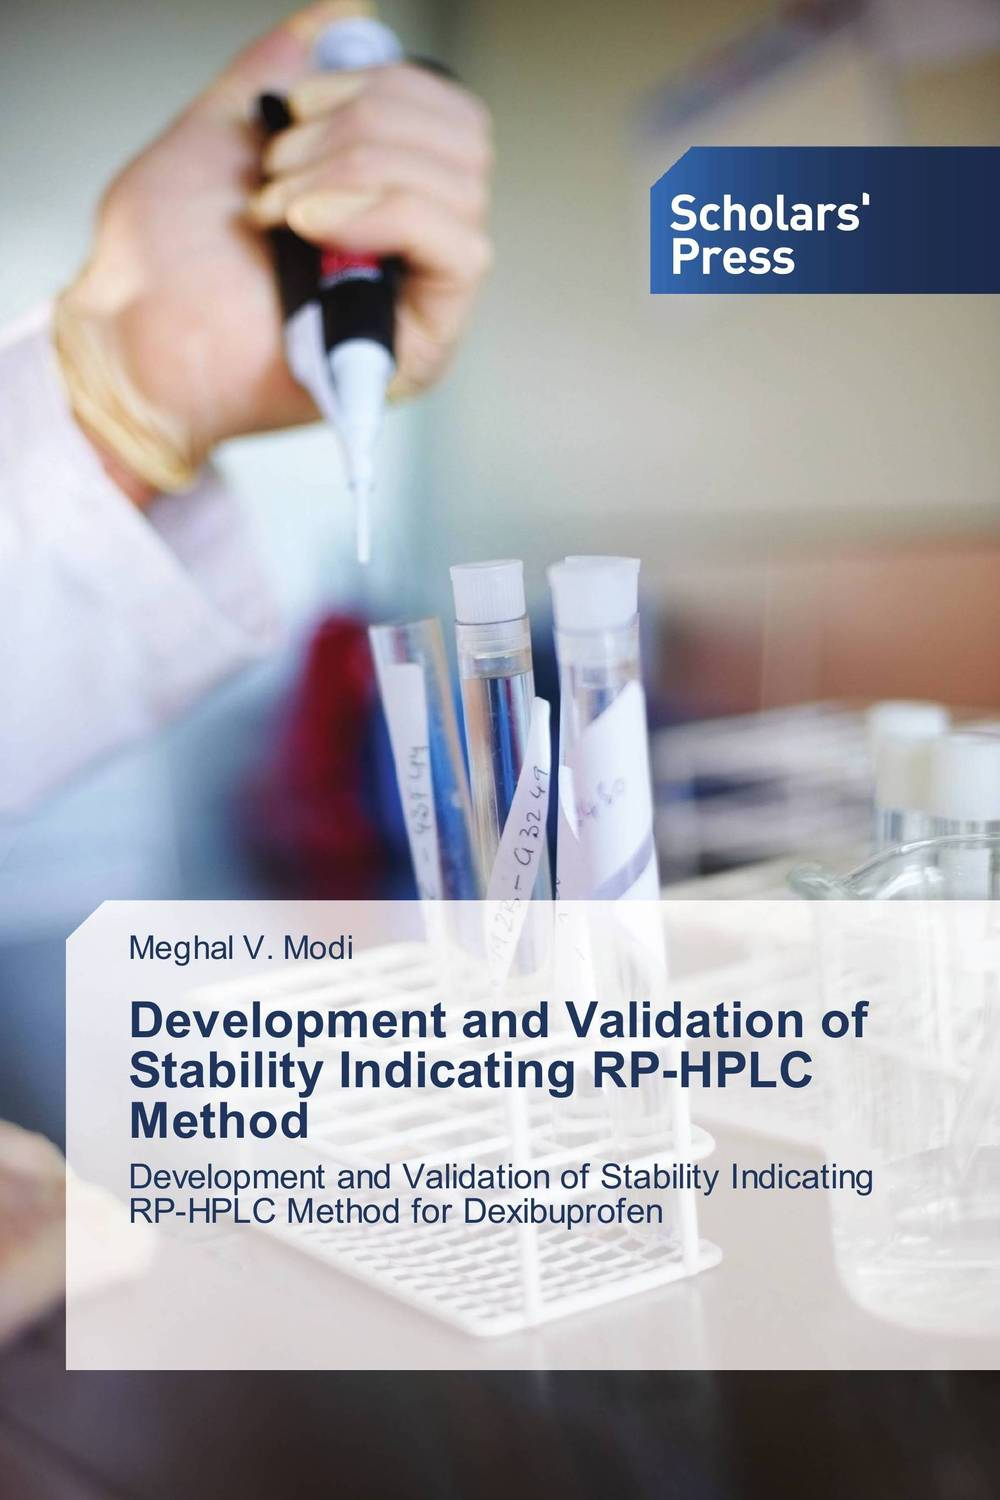 Development and Validation of Stability Indicating RP-HPLC Method stem bromelain in silico analysis for stability and modification